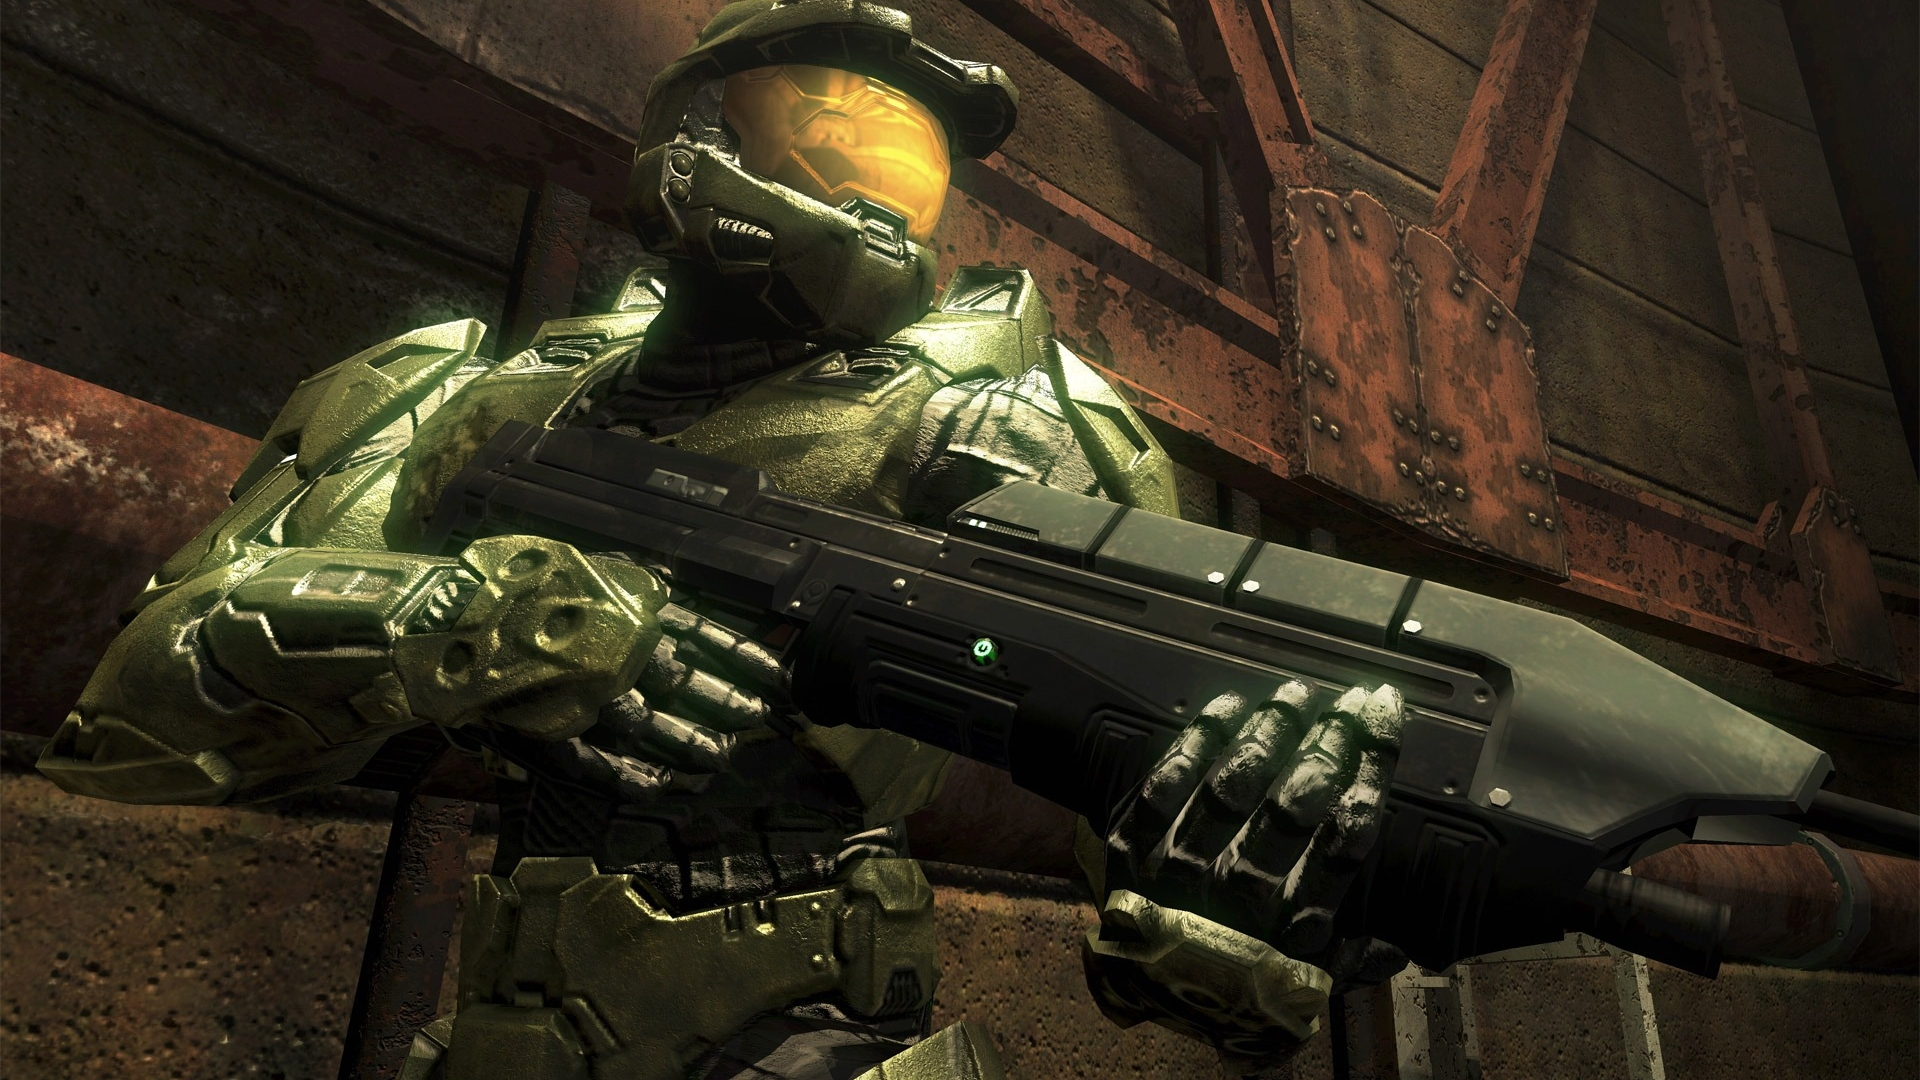 halo 3 wallpaper - hd wallpapers